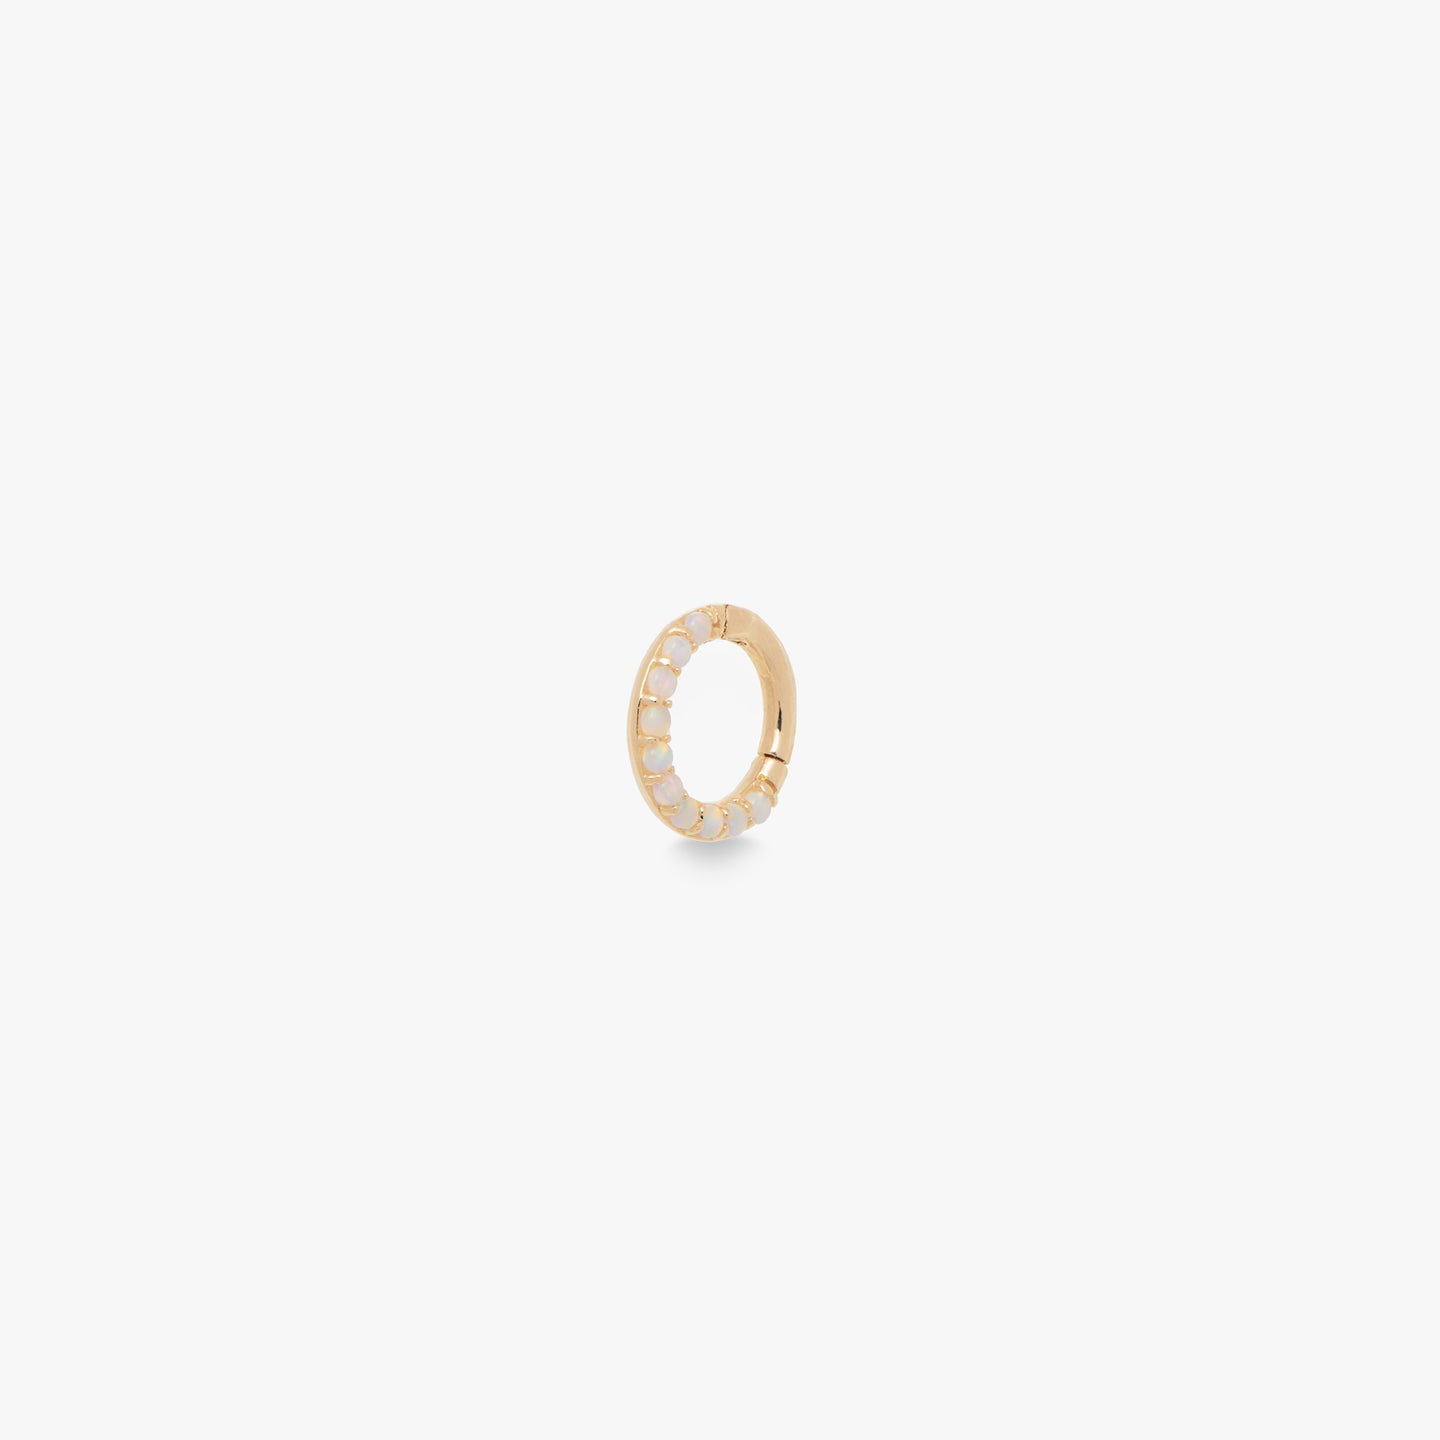 This clicker is a small 14K gold hoop with opal front accents that measures 6mm.